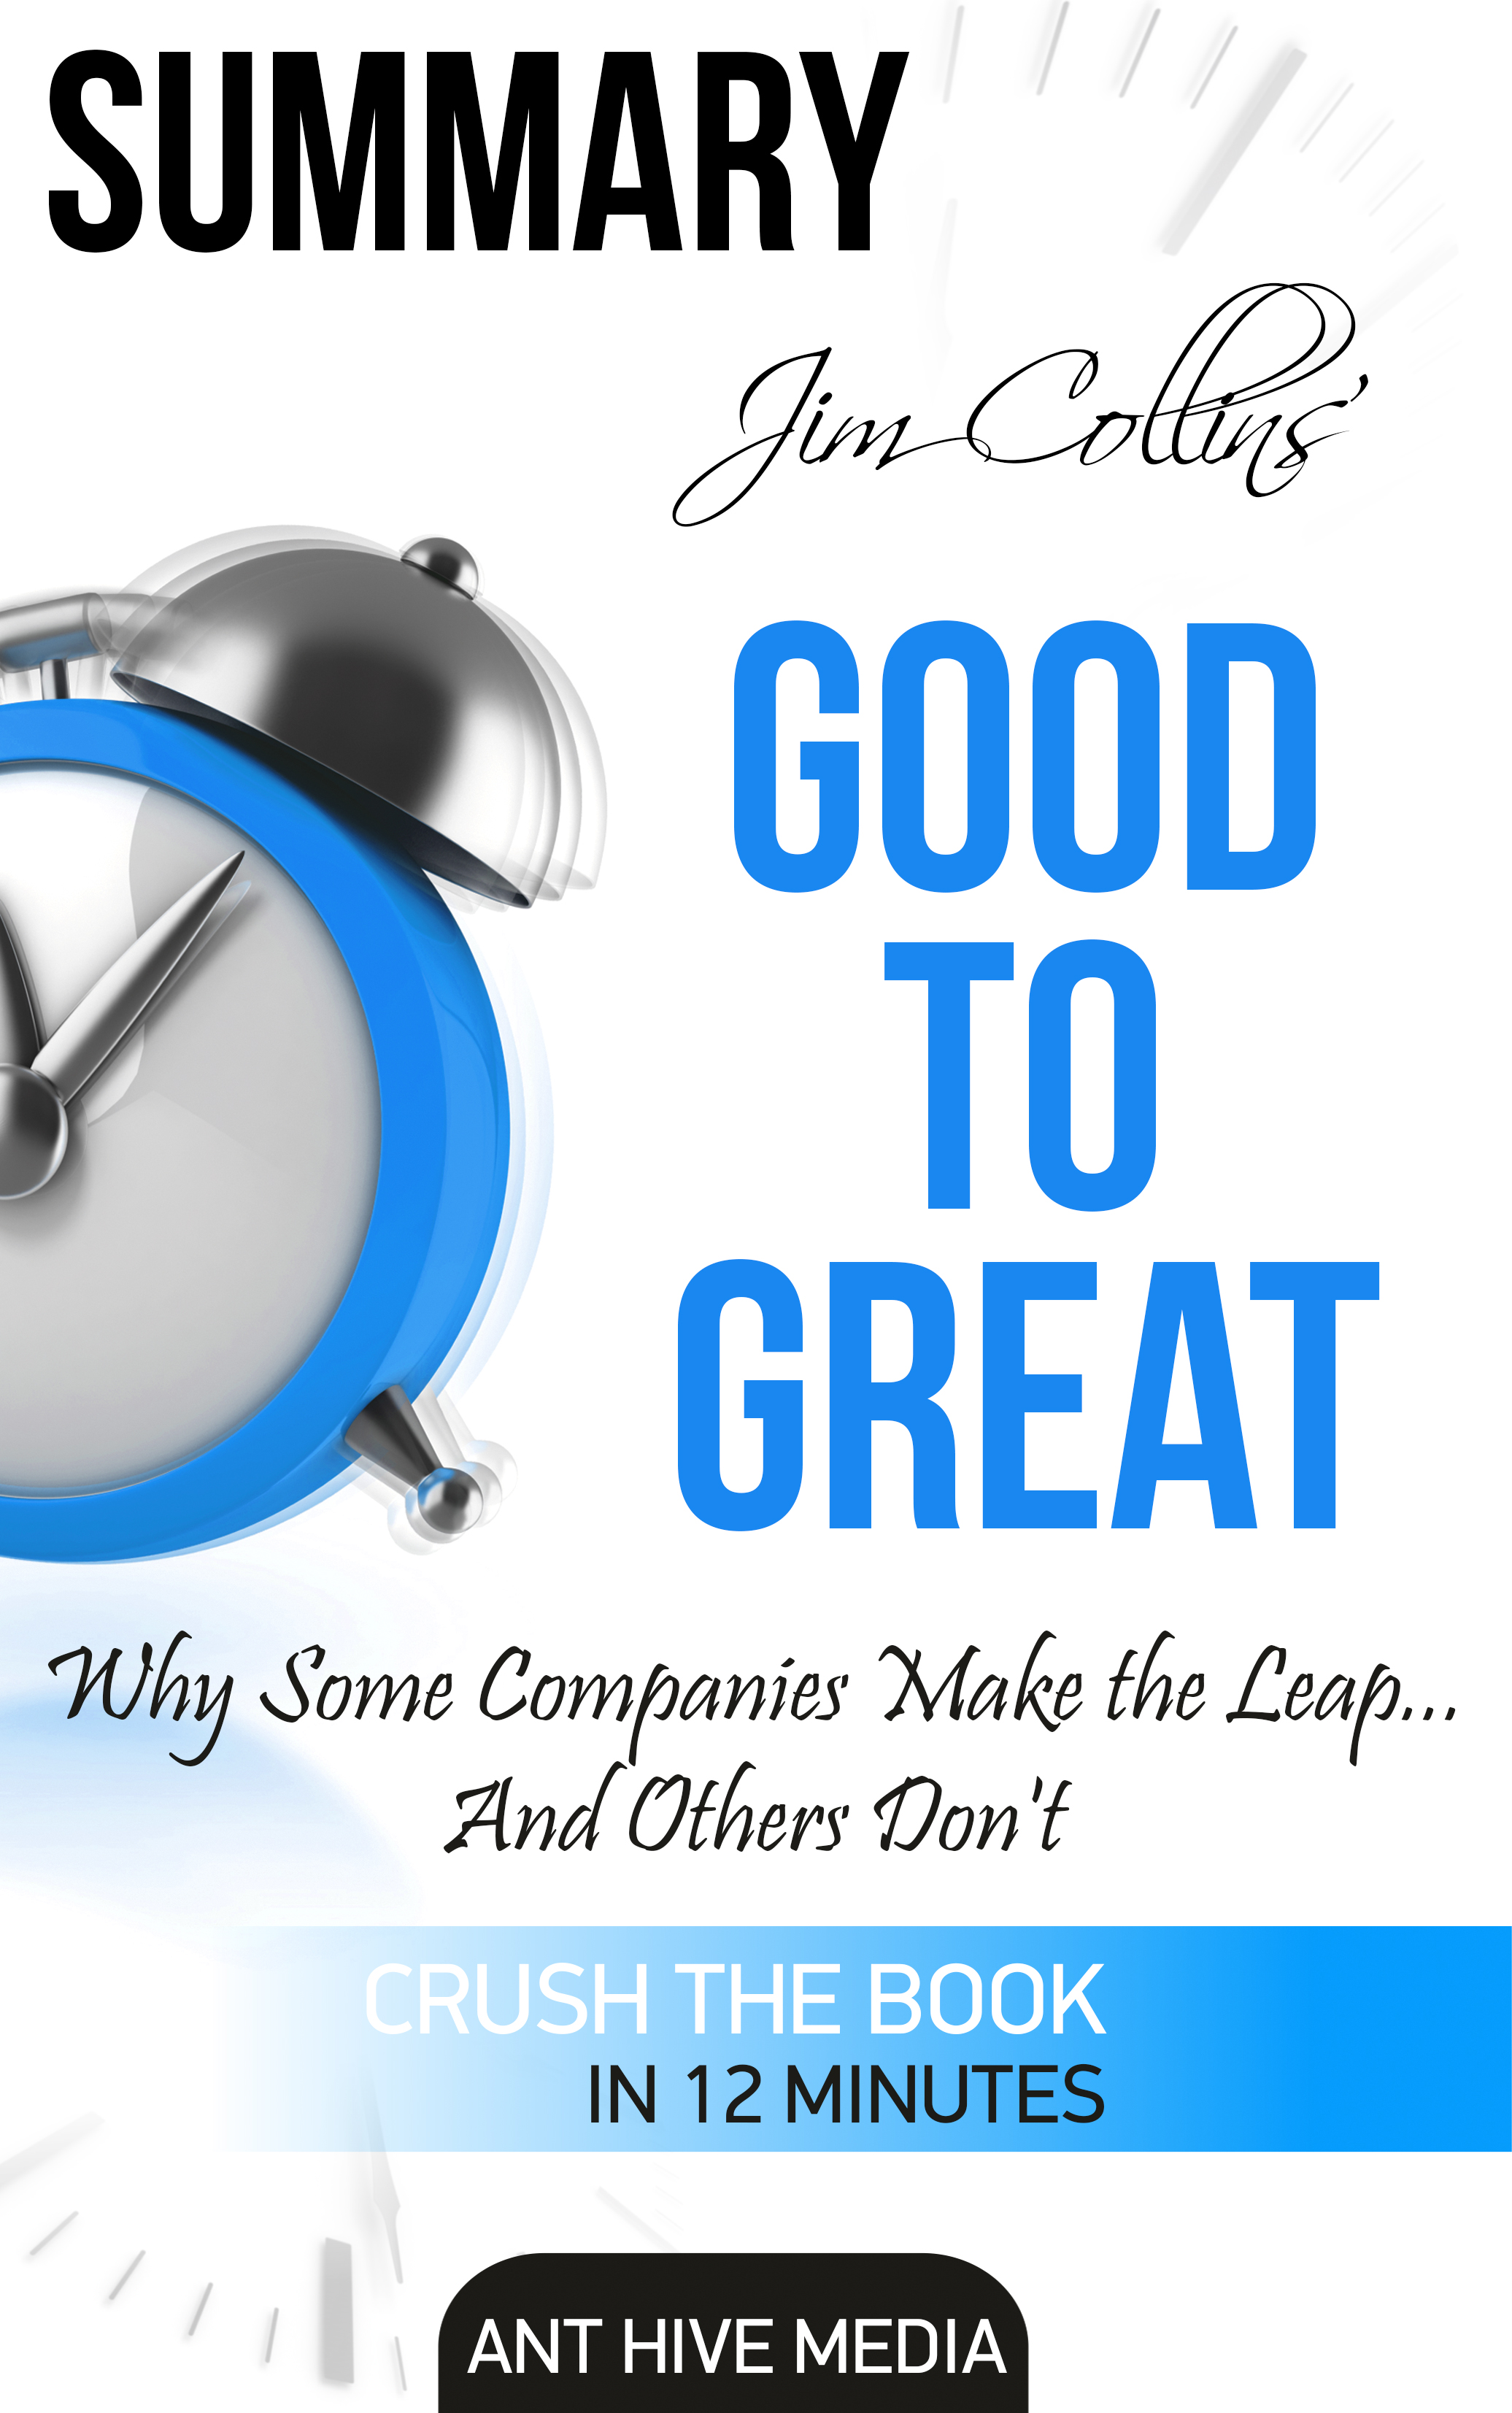 summary of good to great Good to great presents the findings of a five-year study by the author and his research team the team identified public companies that had achieved enduring success after years of mediocre performance and isolated the factors which differentiated those companies from their lacklustre competitors.